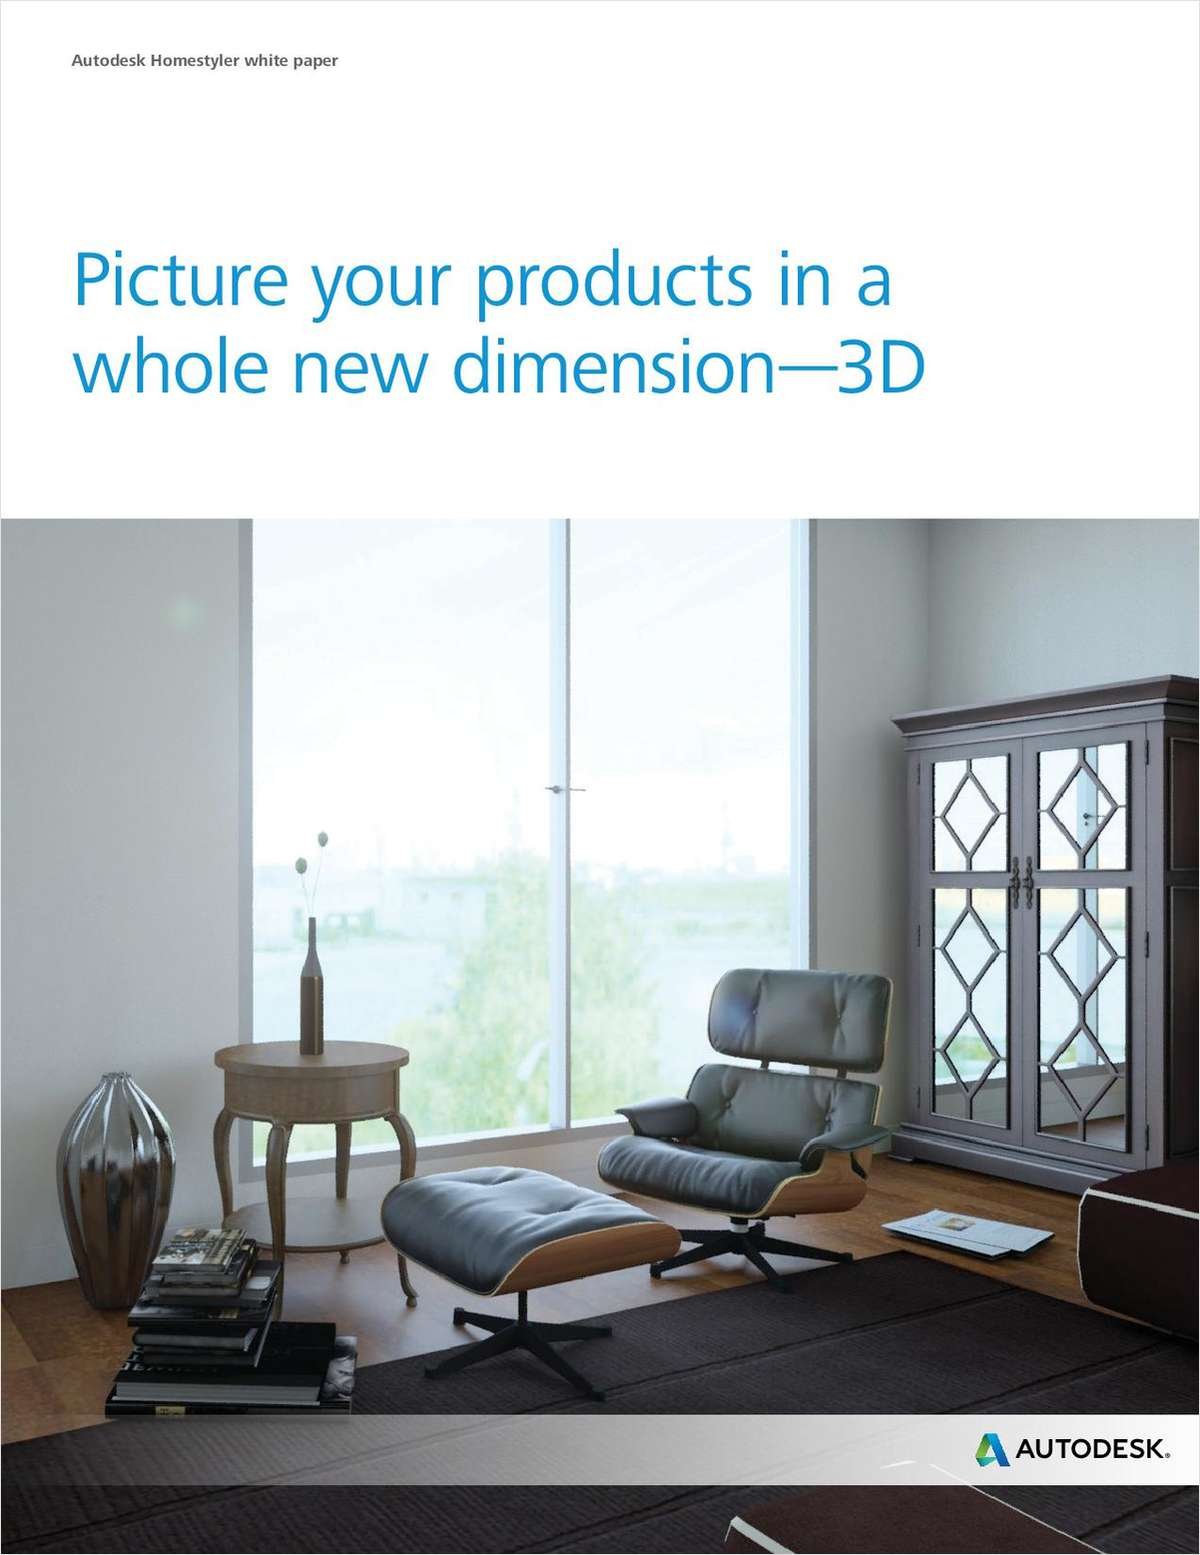 Picture Your Furniture Products in a Whole New Dimension—3D